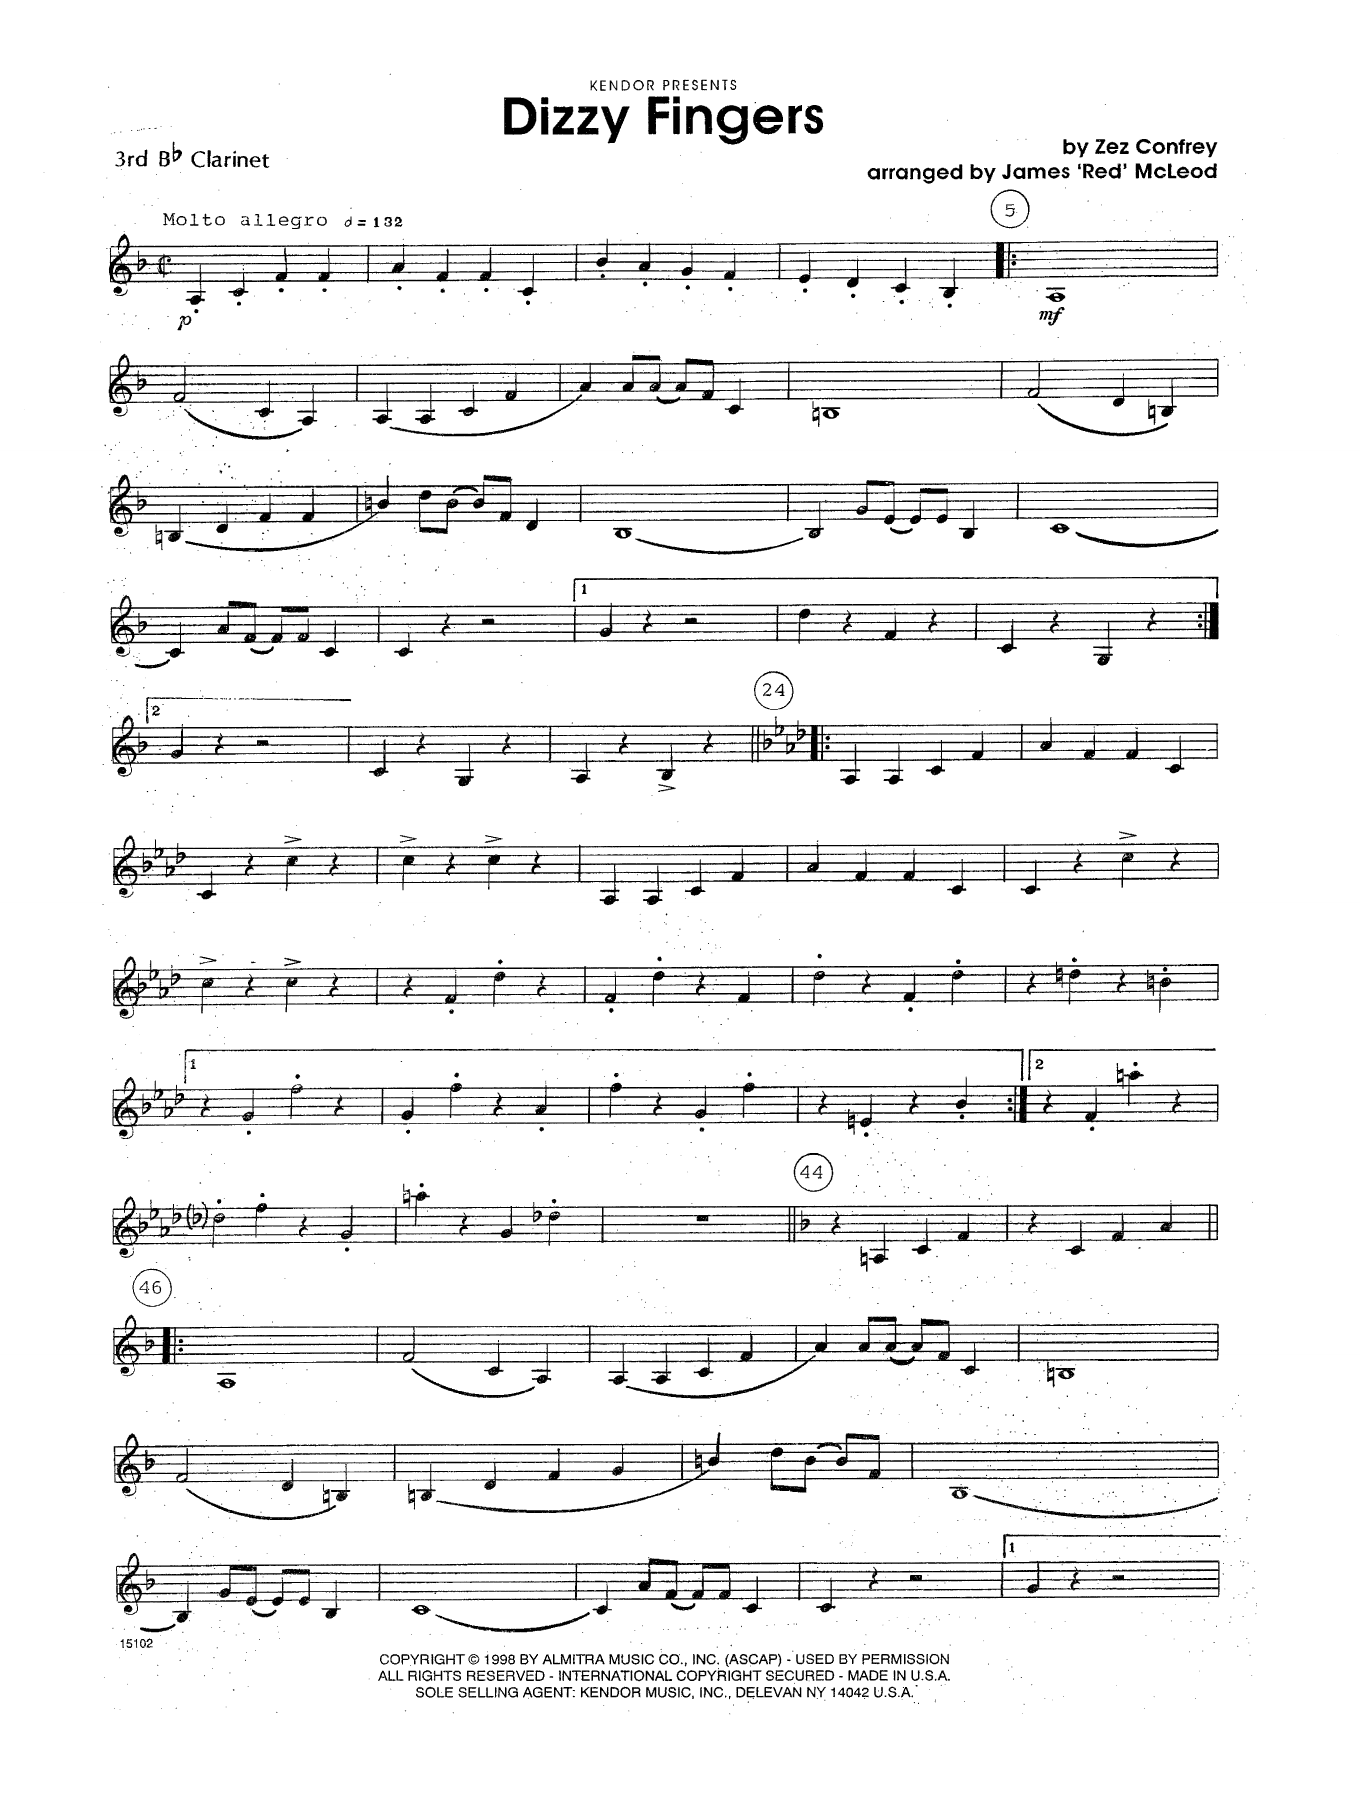 Sheet music digital files to print licensed woodwind ensemble dizzy fingers 3rd bb clarinet hexwebz Gallery